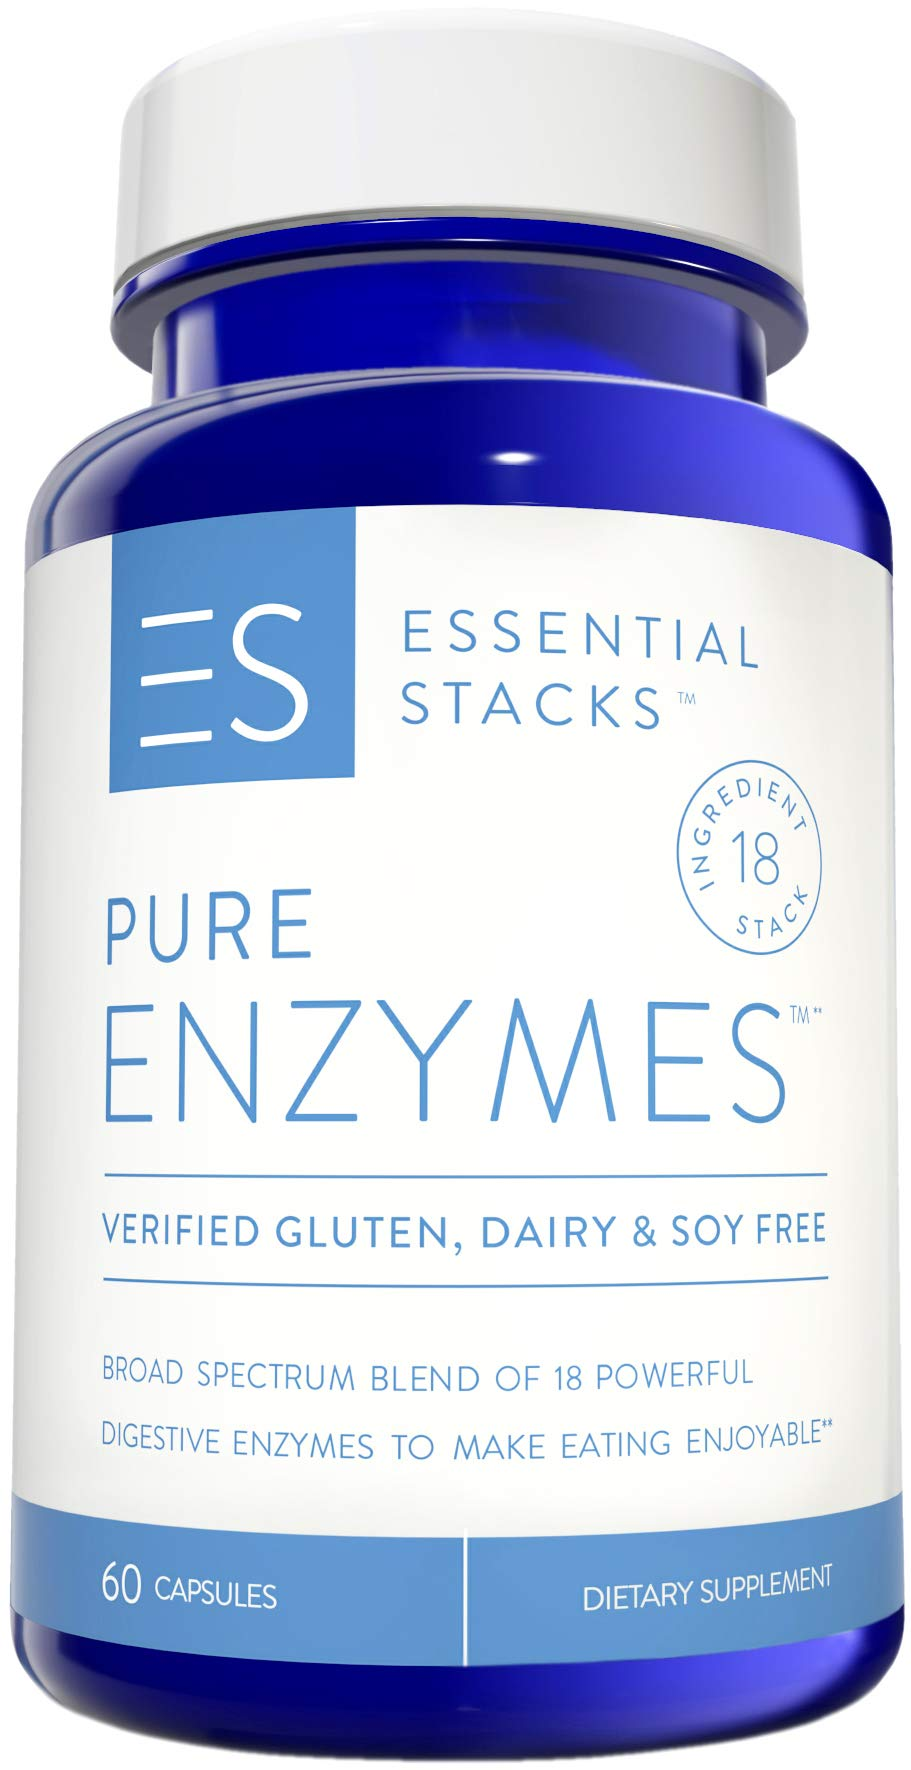 Essential Stacks Pure Enzymes - Gluten Free, Dairy Free & Soy Free with 3rd Party Verified Allergen Testing – Smart Blend of 18 Powerful Digestive Enzymes So You Can Digest All Food Groups